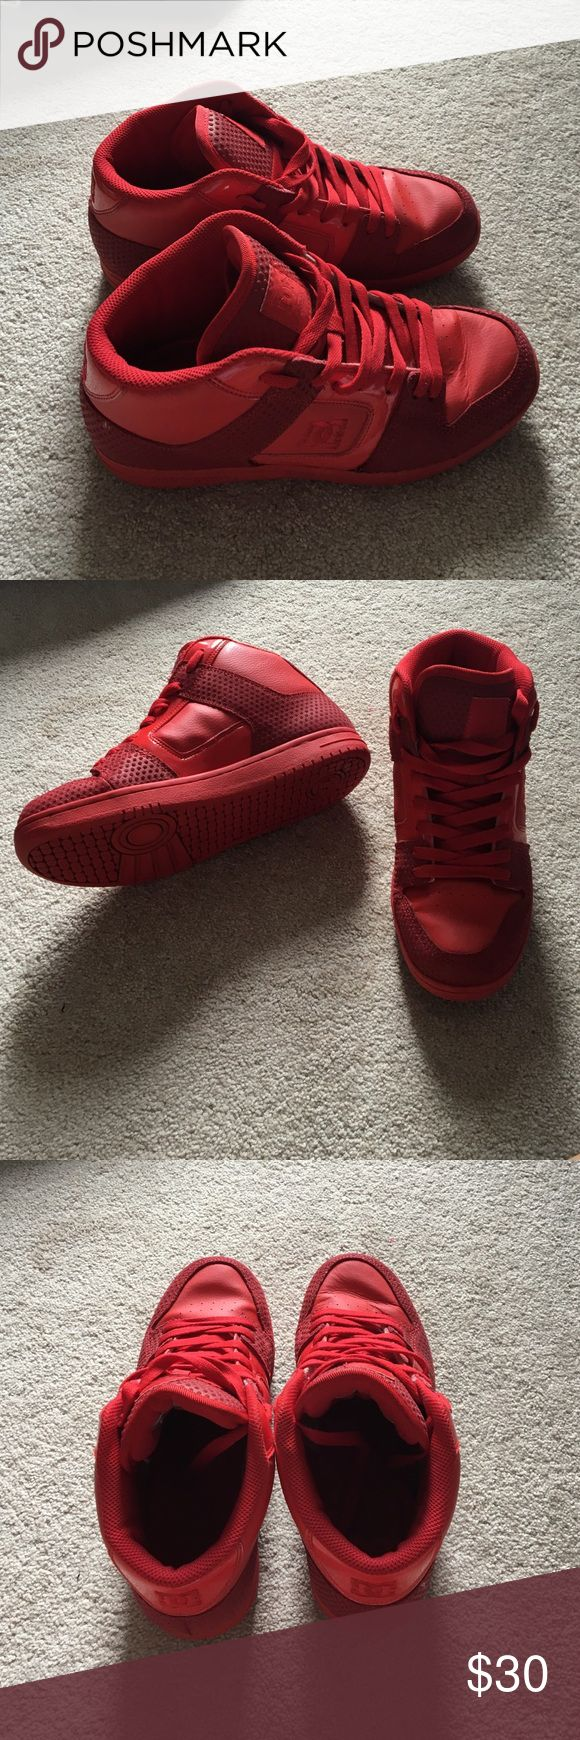 DC red high top sneaker Barely worn red high top DC sneakers, no scuffing but slight wear DC Shoes Sneakers